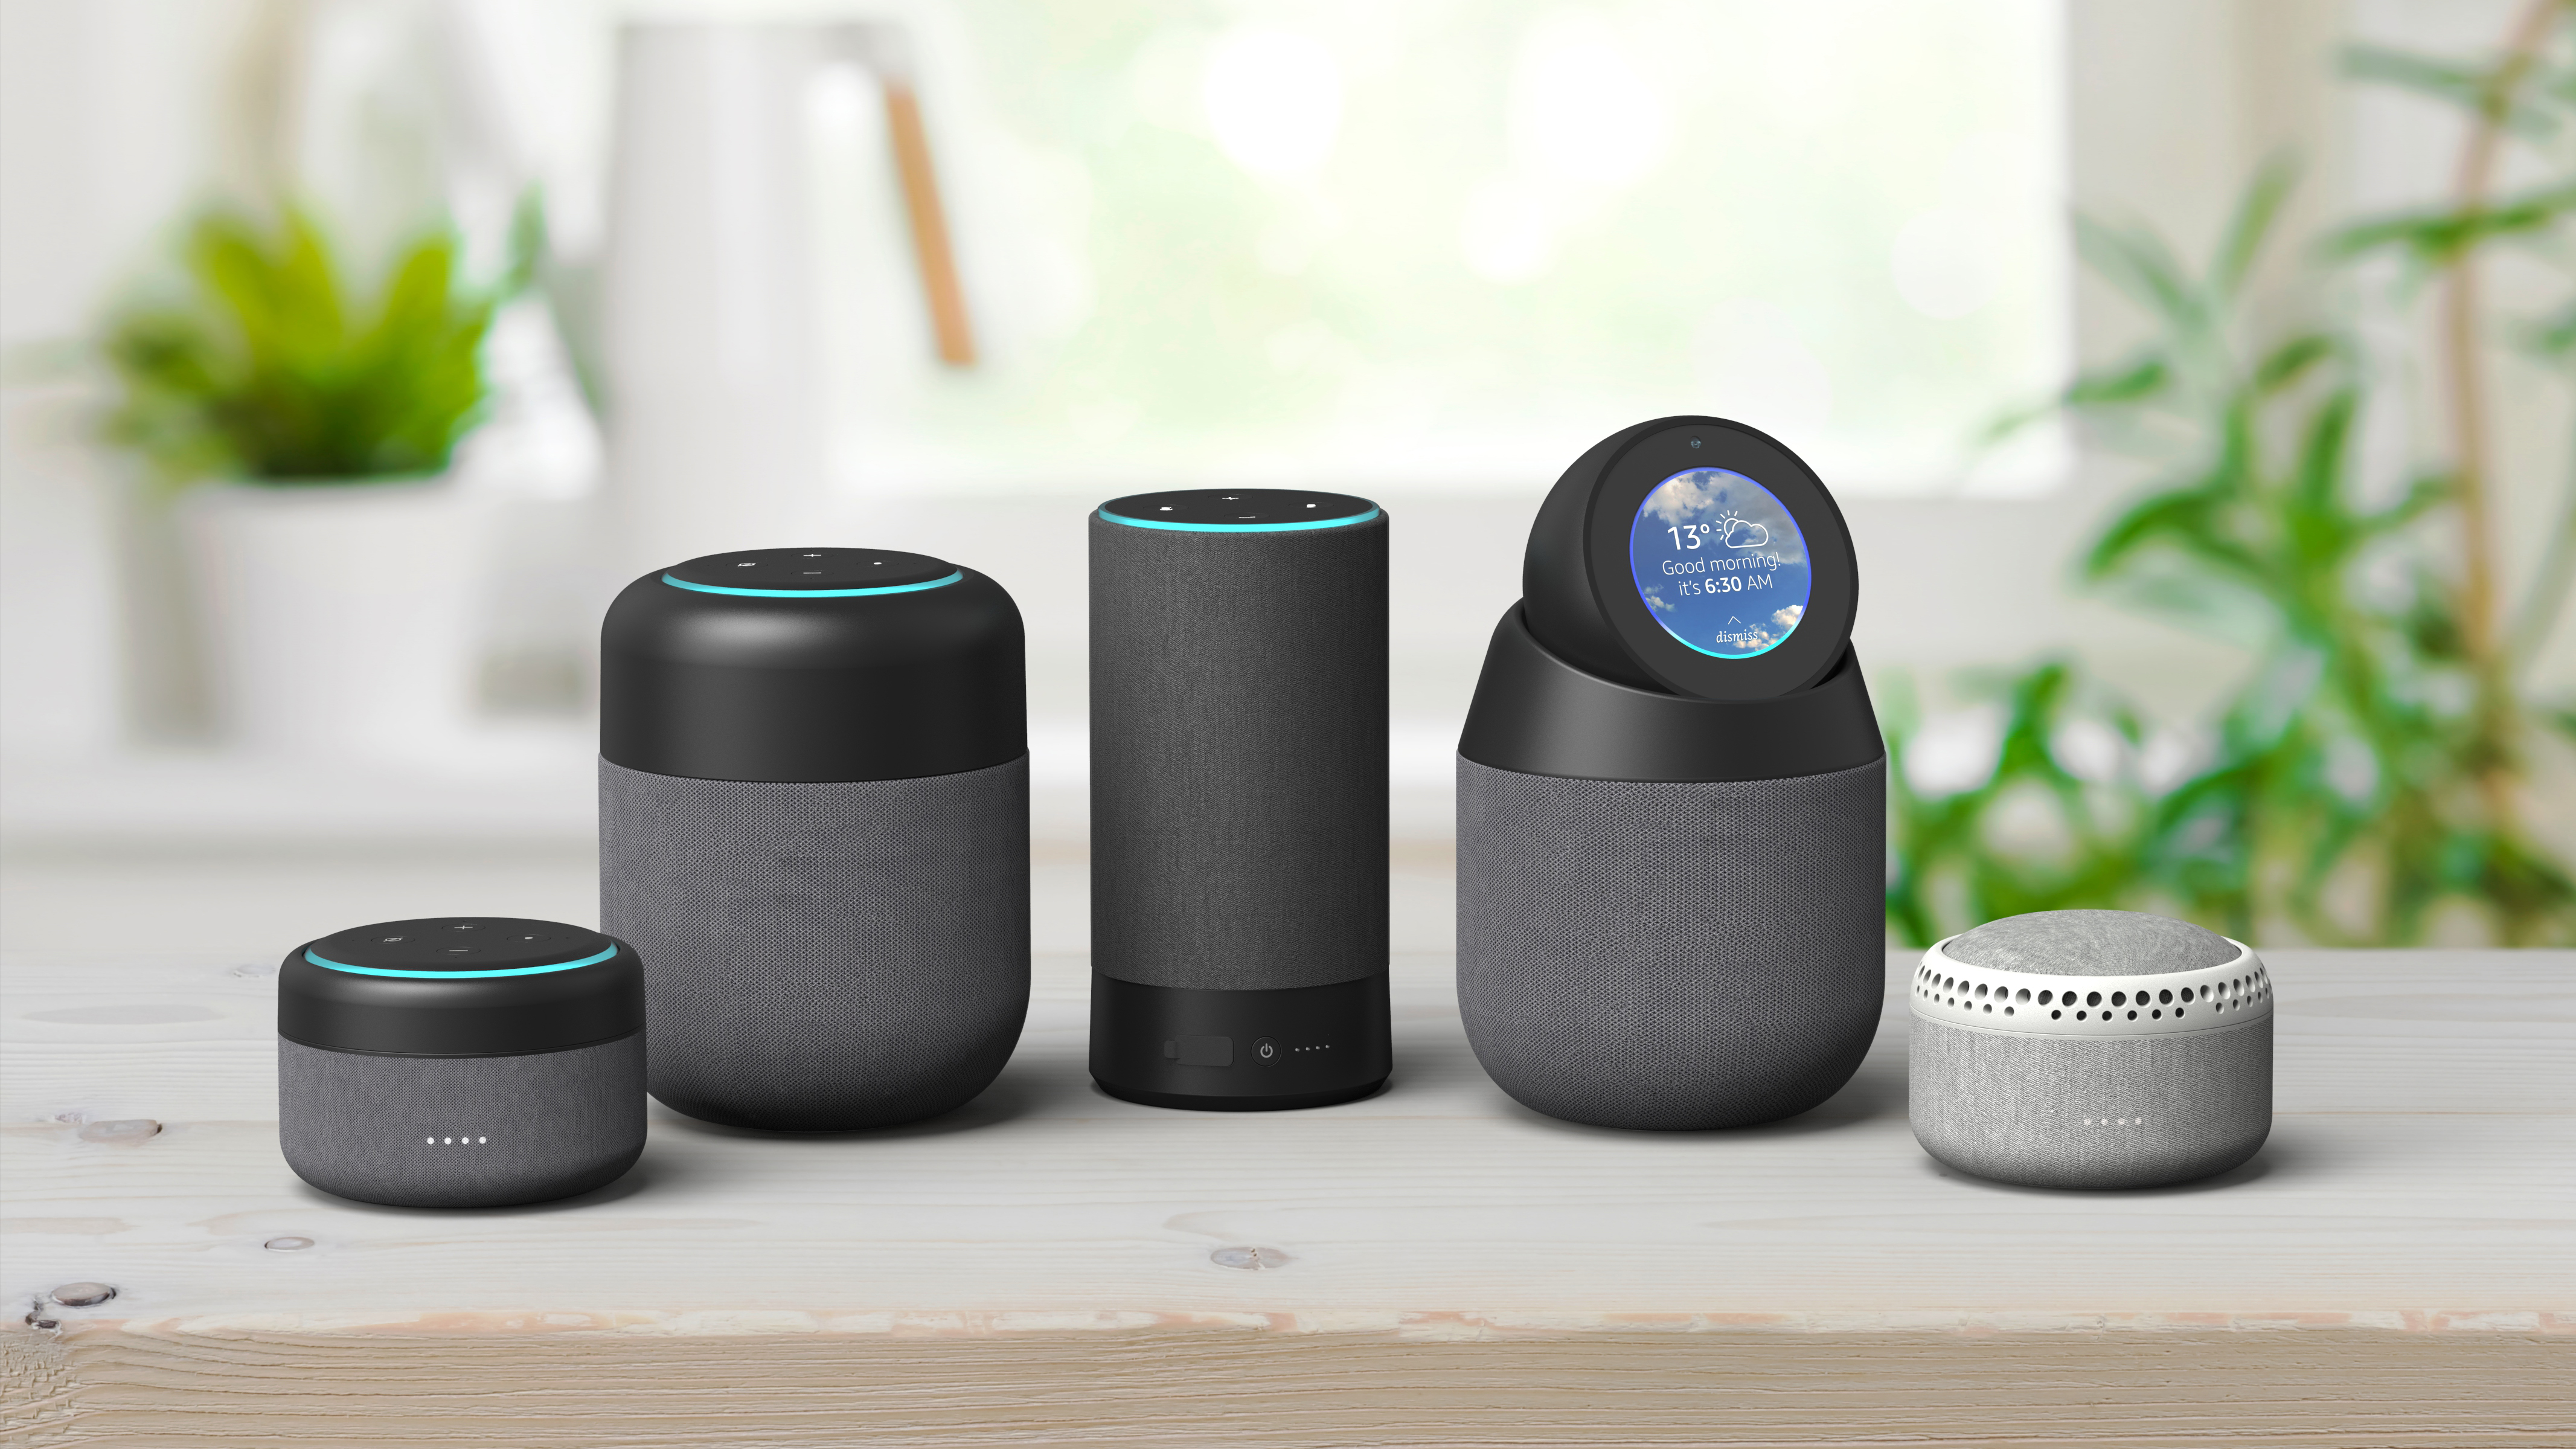 The Amazon Echo Spot goes portable with the I-box Vault dock